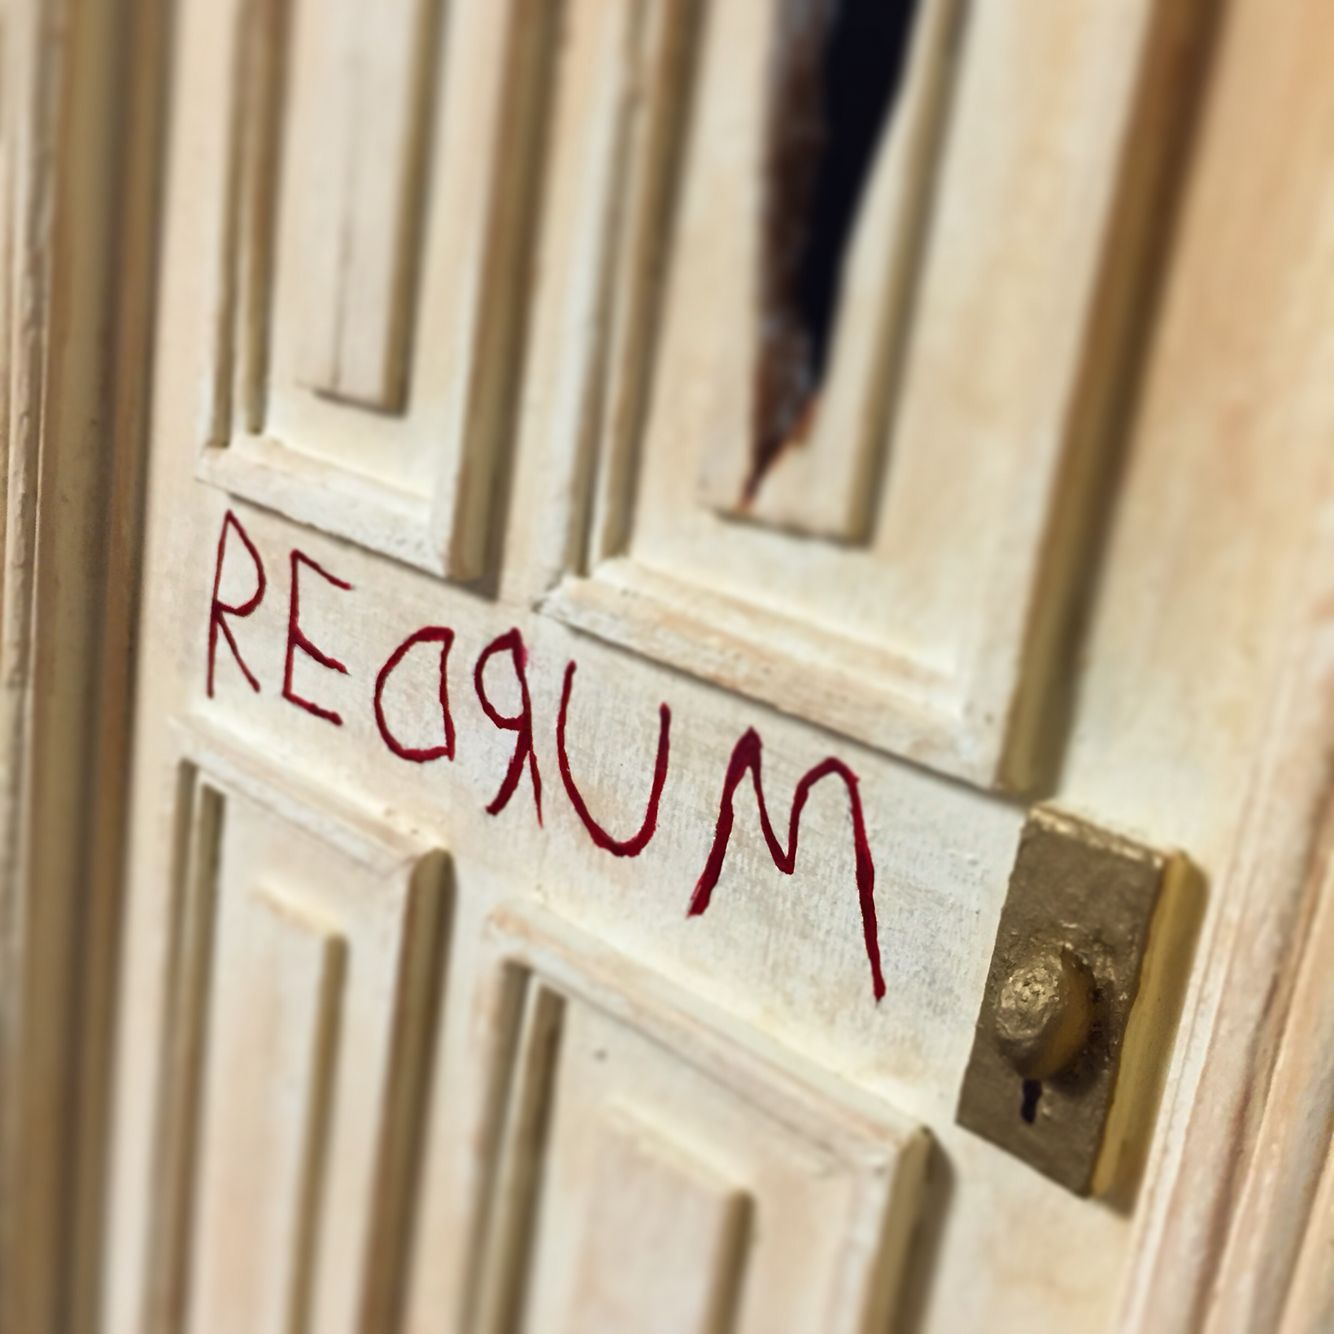 Custom 1/6 scale REDRUM door & Custom 1/6 scale REDRUM door | The Door Project | Pinterest